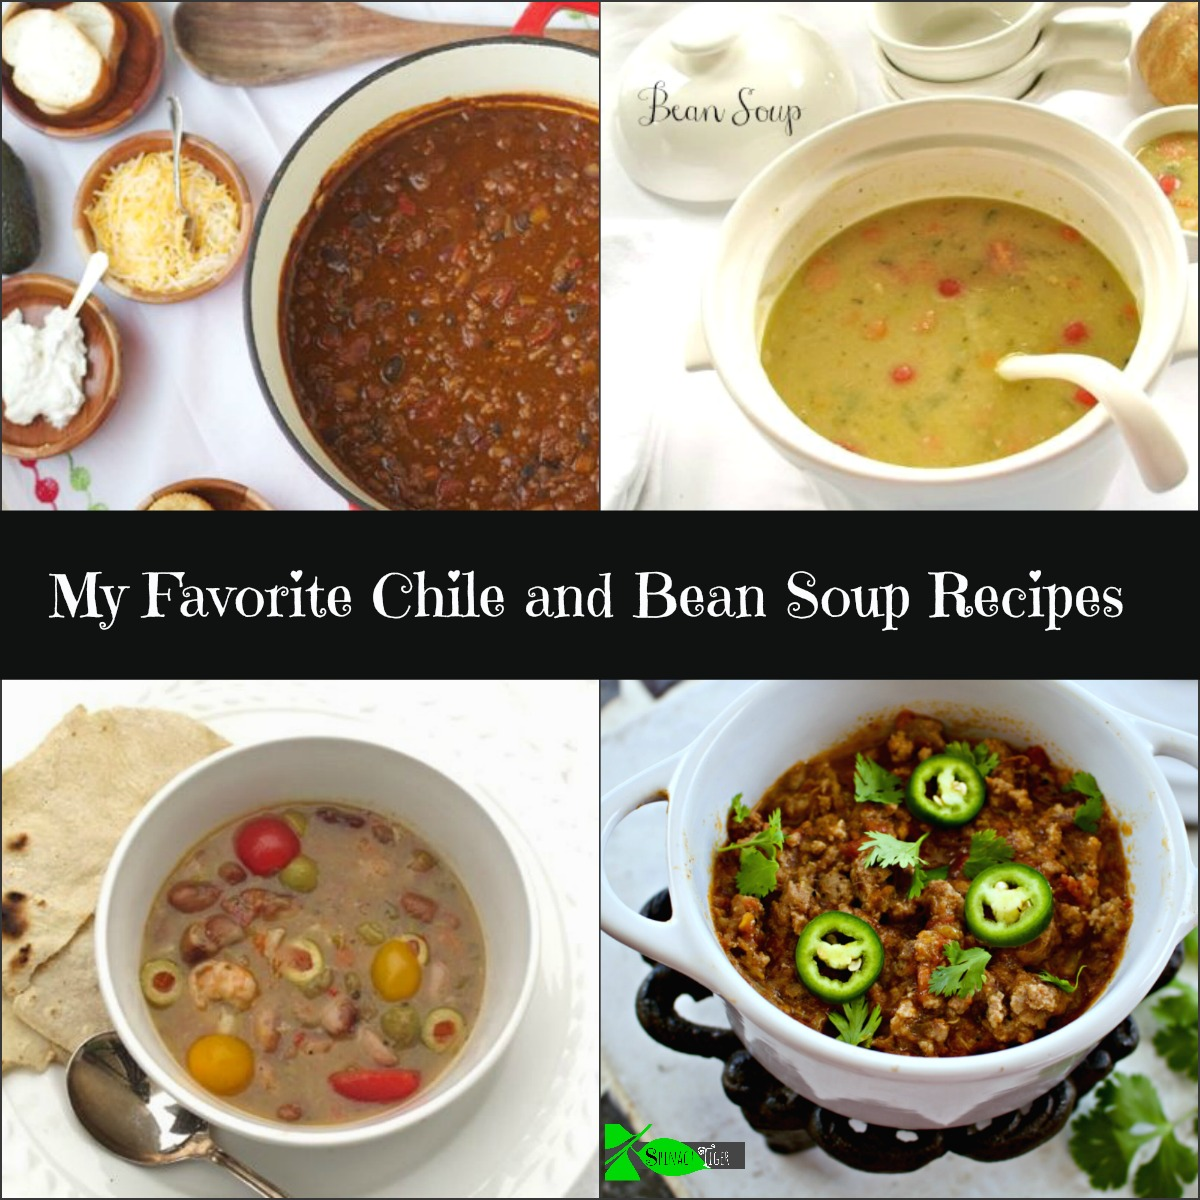 My Favorite Chili & Bean Soup Recipes from Spinach TIger